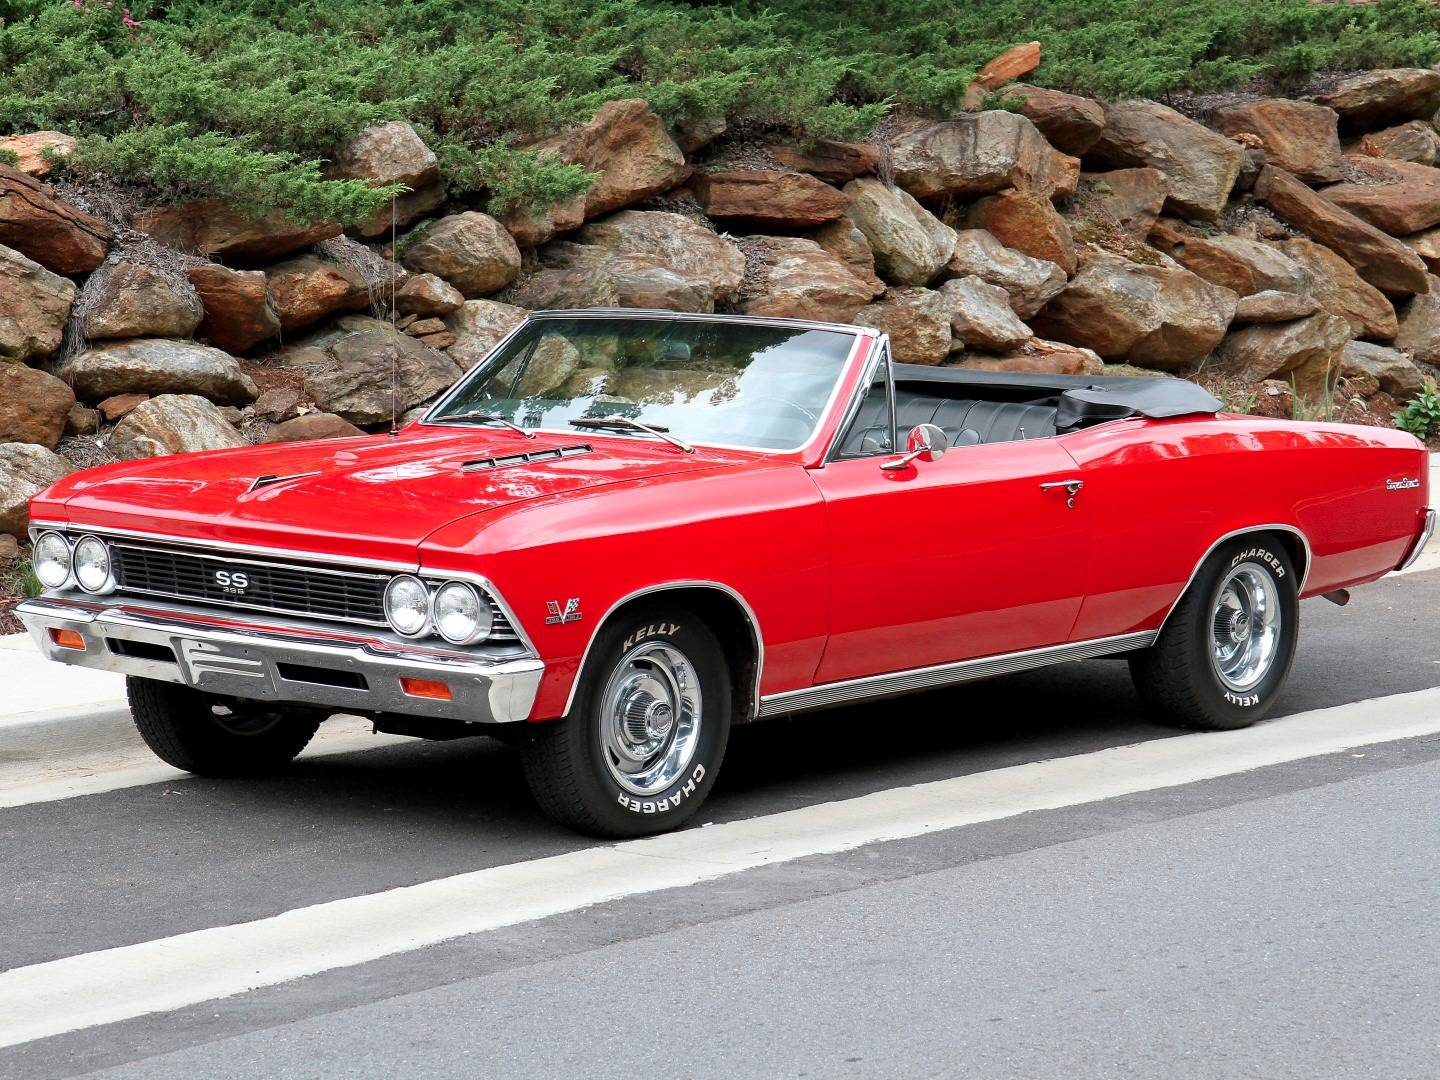 1966 Chevrolet Chevelle Ss 396 375 Coupe Business Insider India Chevy